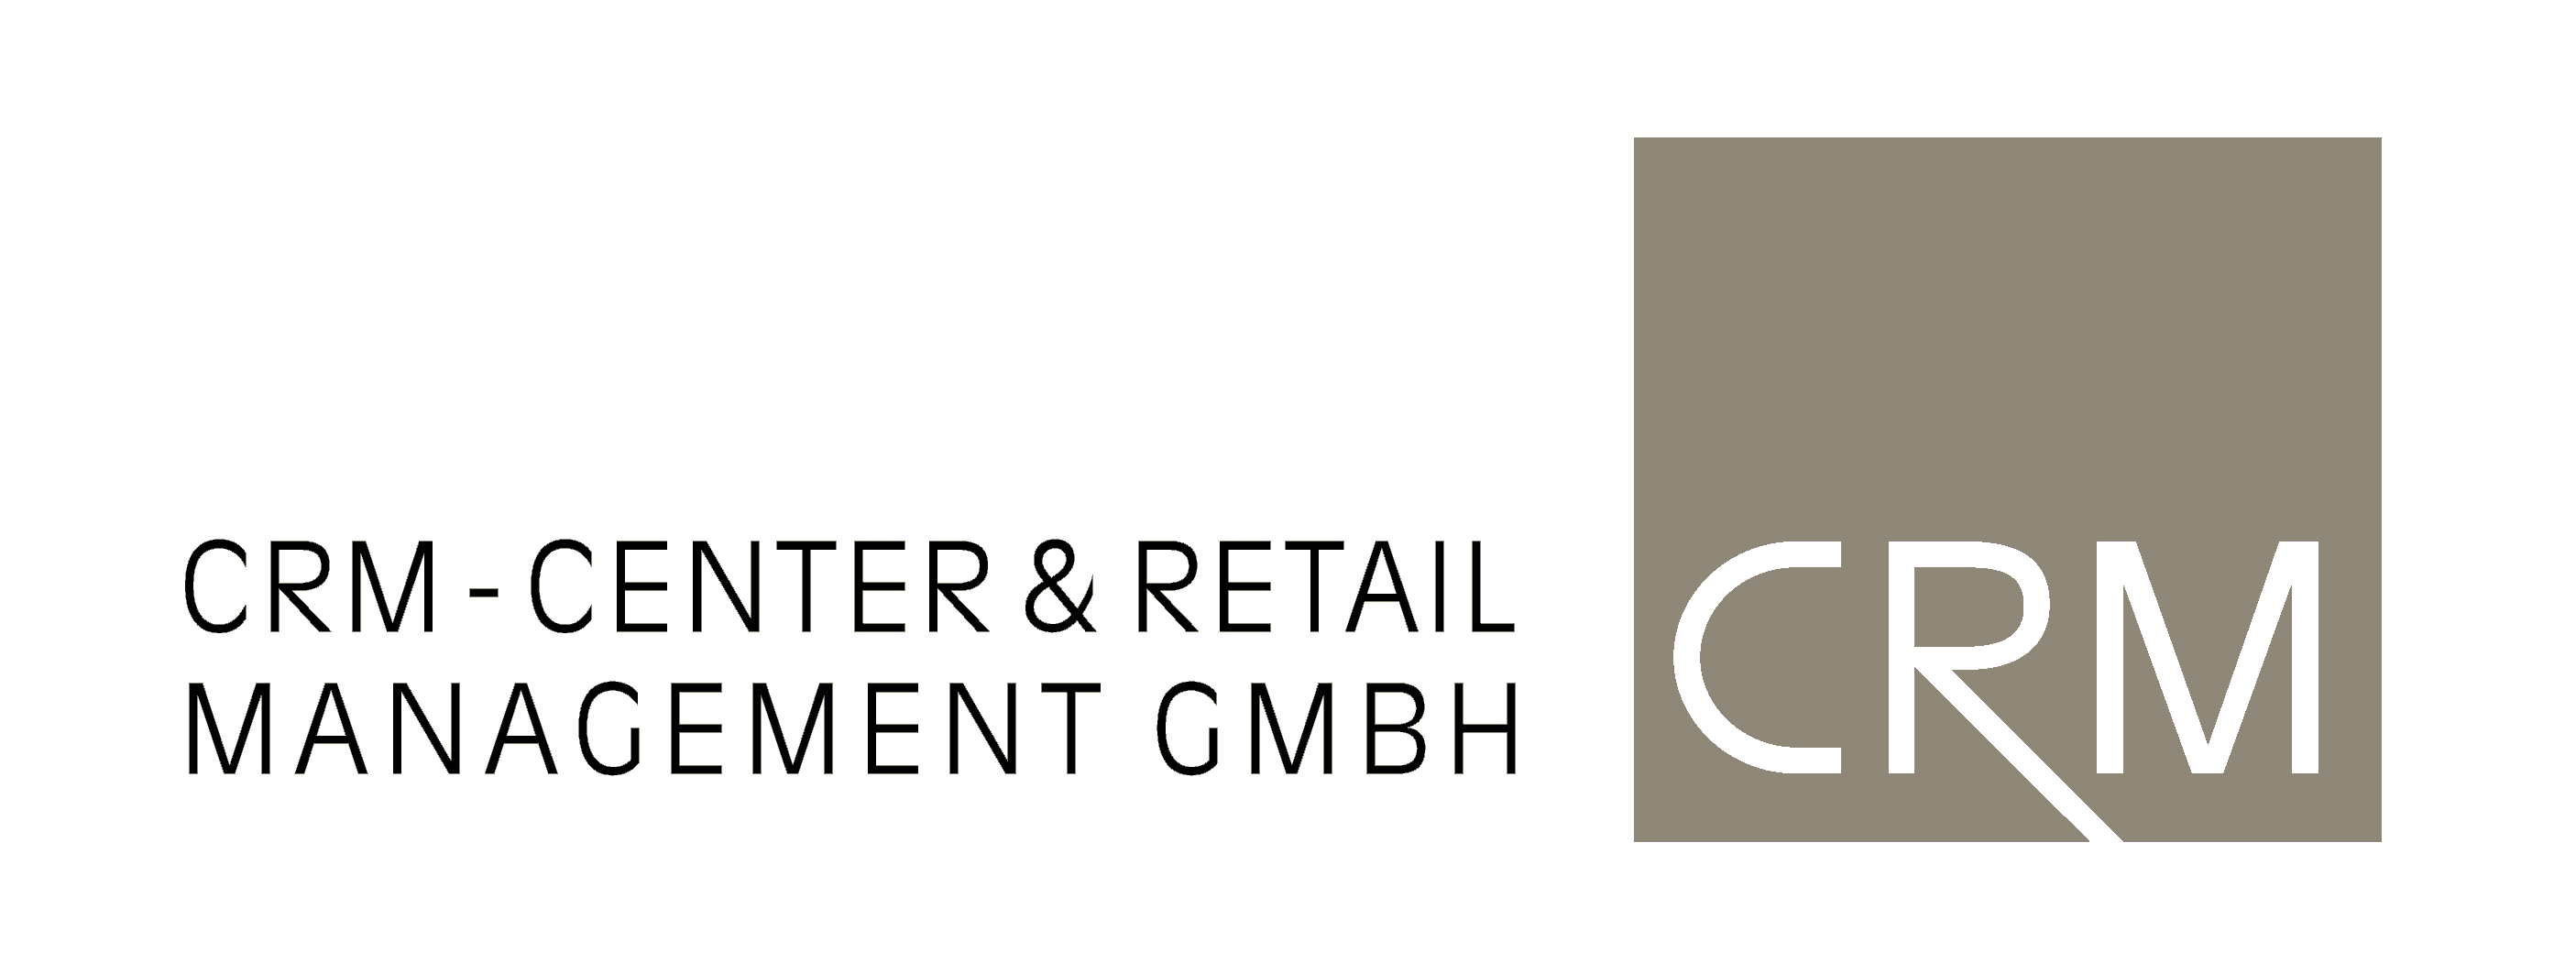 Logo CRM Center and Retail Management